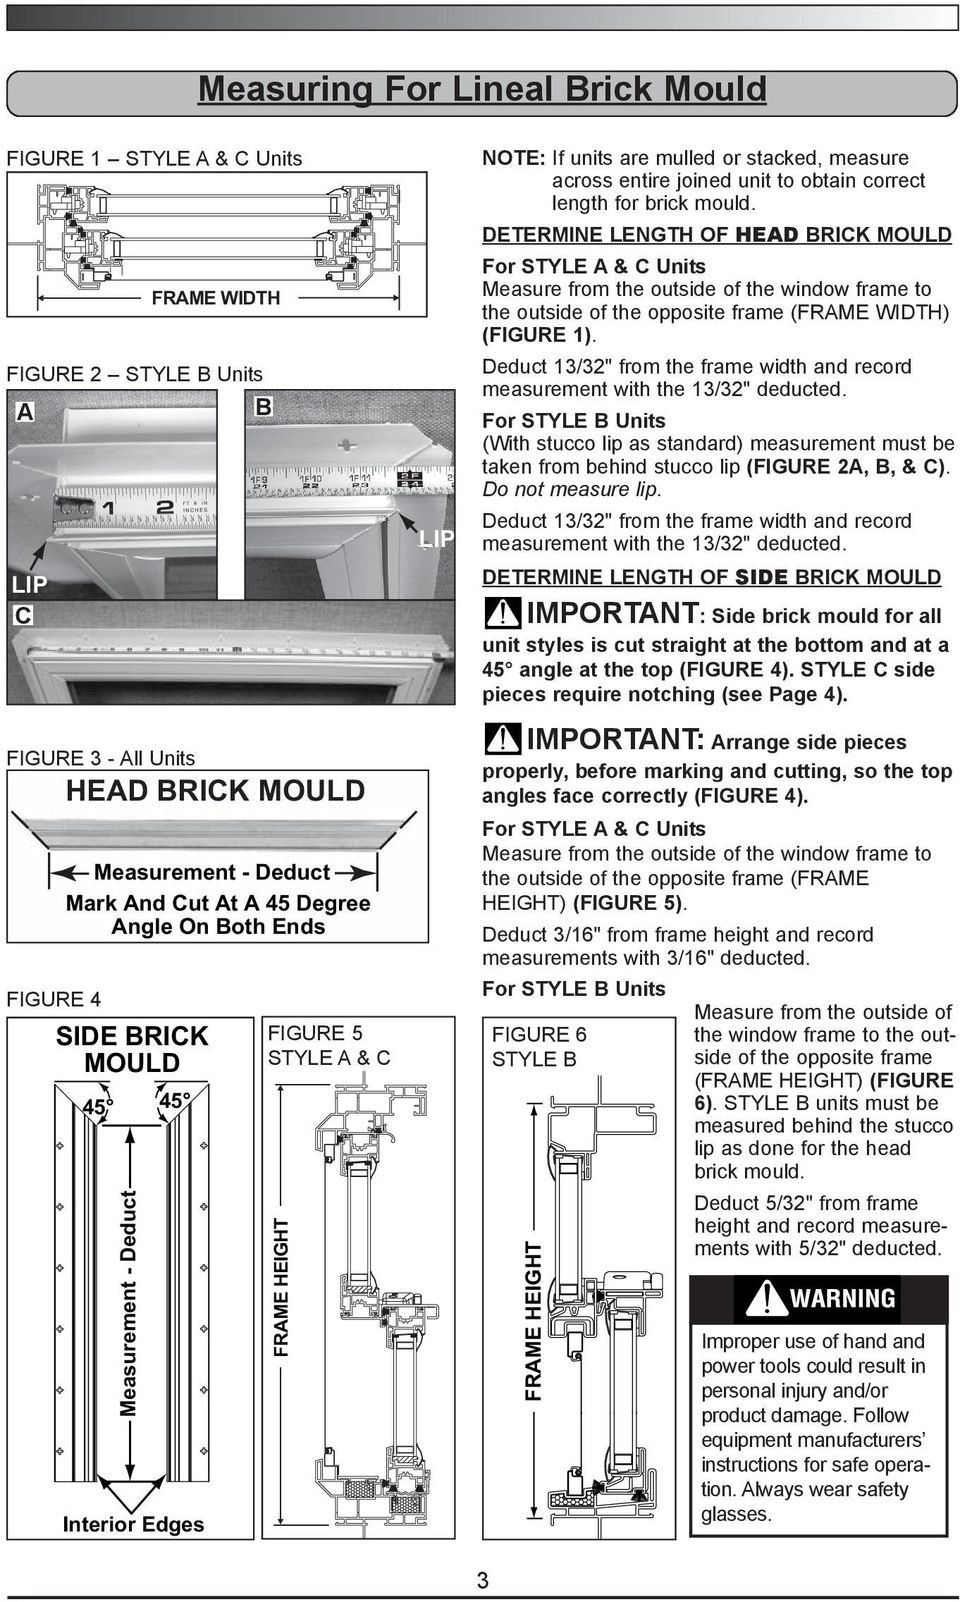 brick mould. DETERMINE LENGTH OF HEAD For STYLE A & C Units Measure from the outside of the window frame to the outside of the opposite frame (FRAME WIDTH) (FIGURE 1).